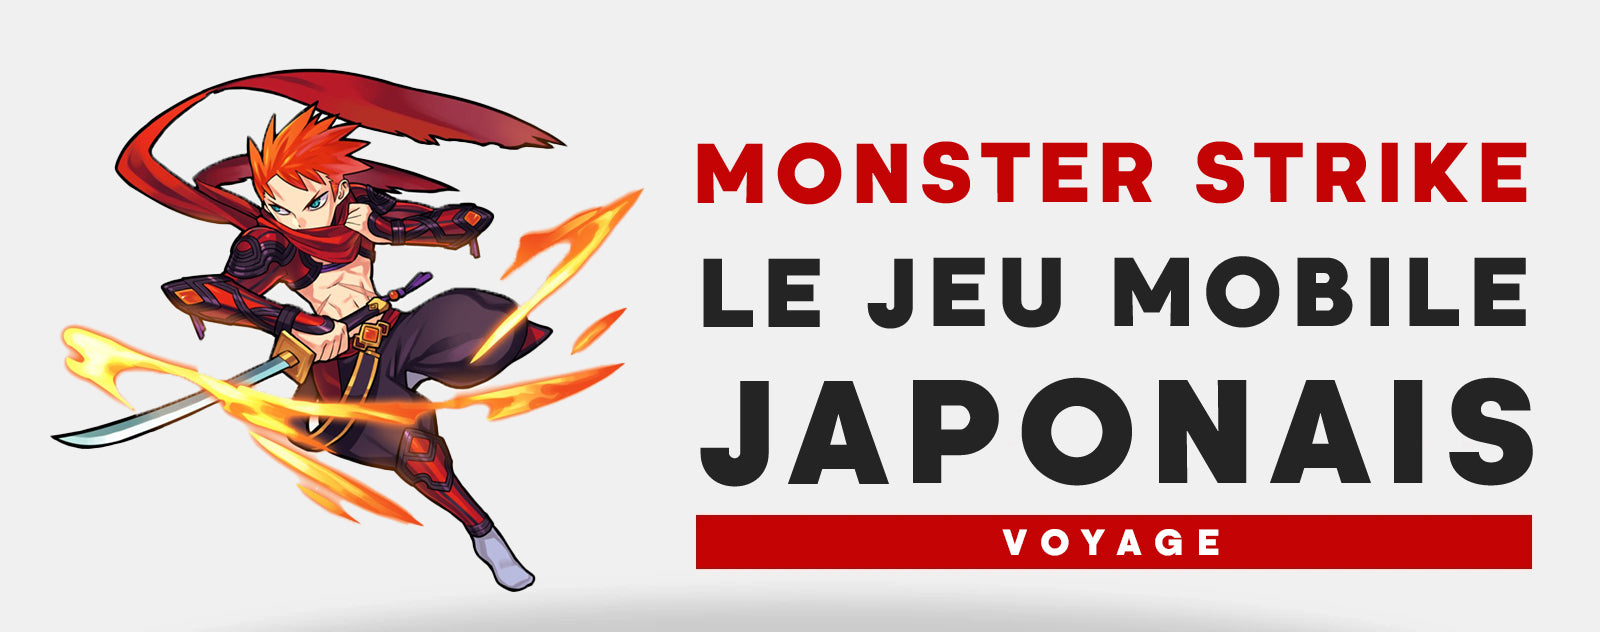 Monster Strike le Jeu Mobile Japonais